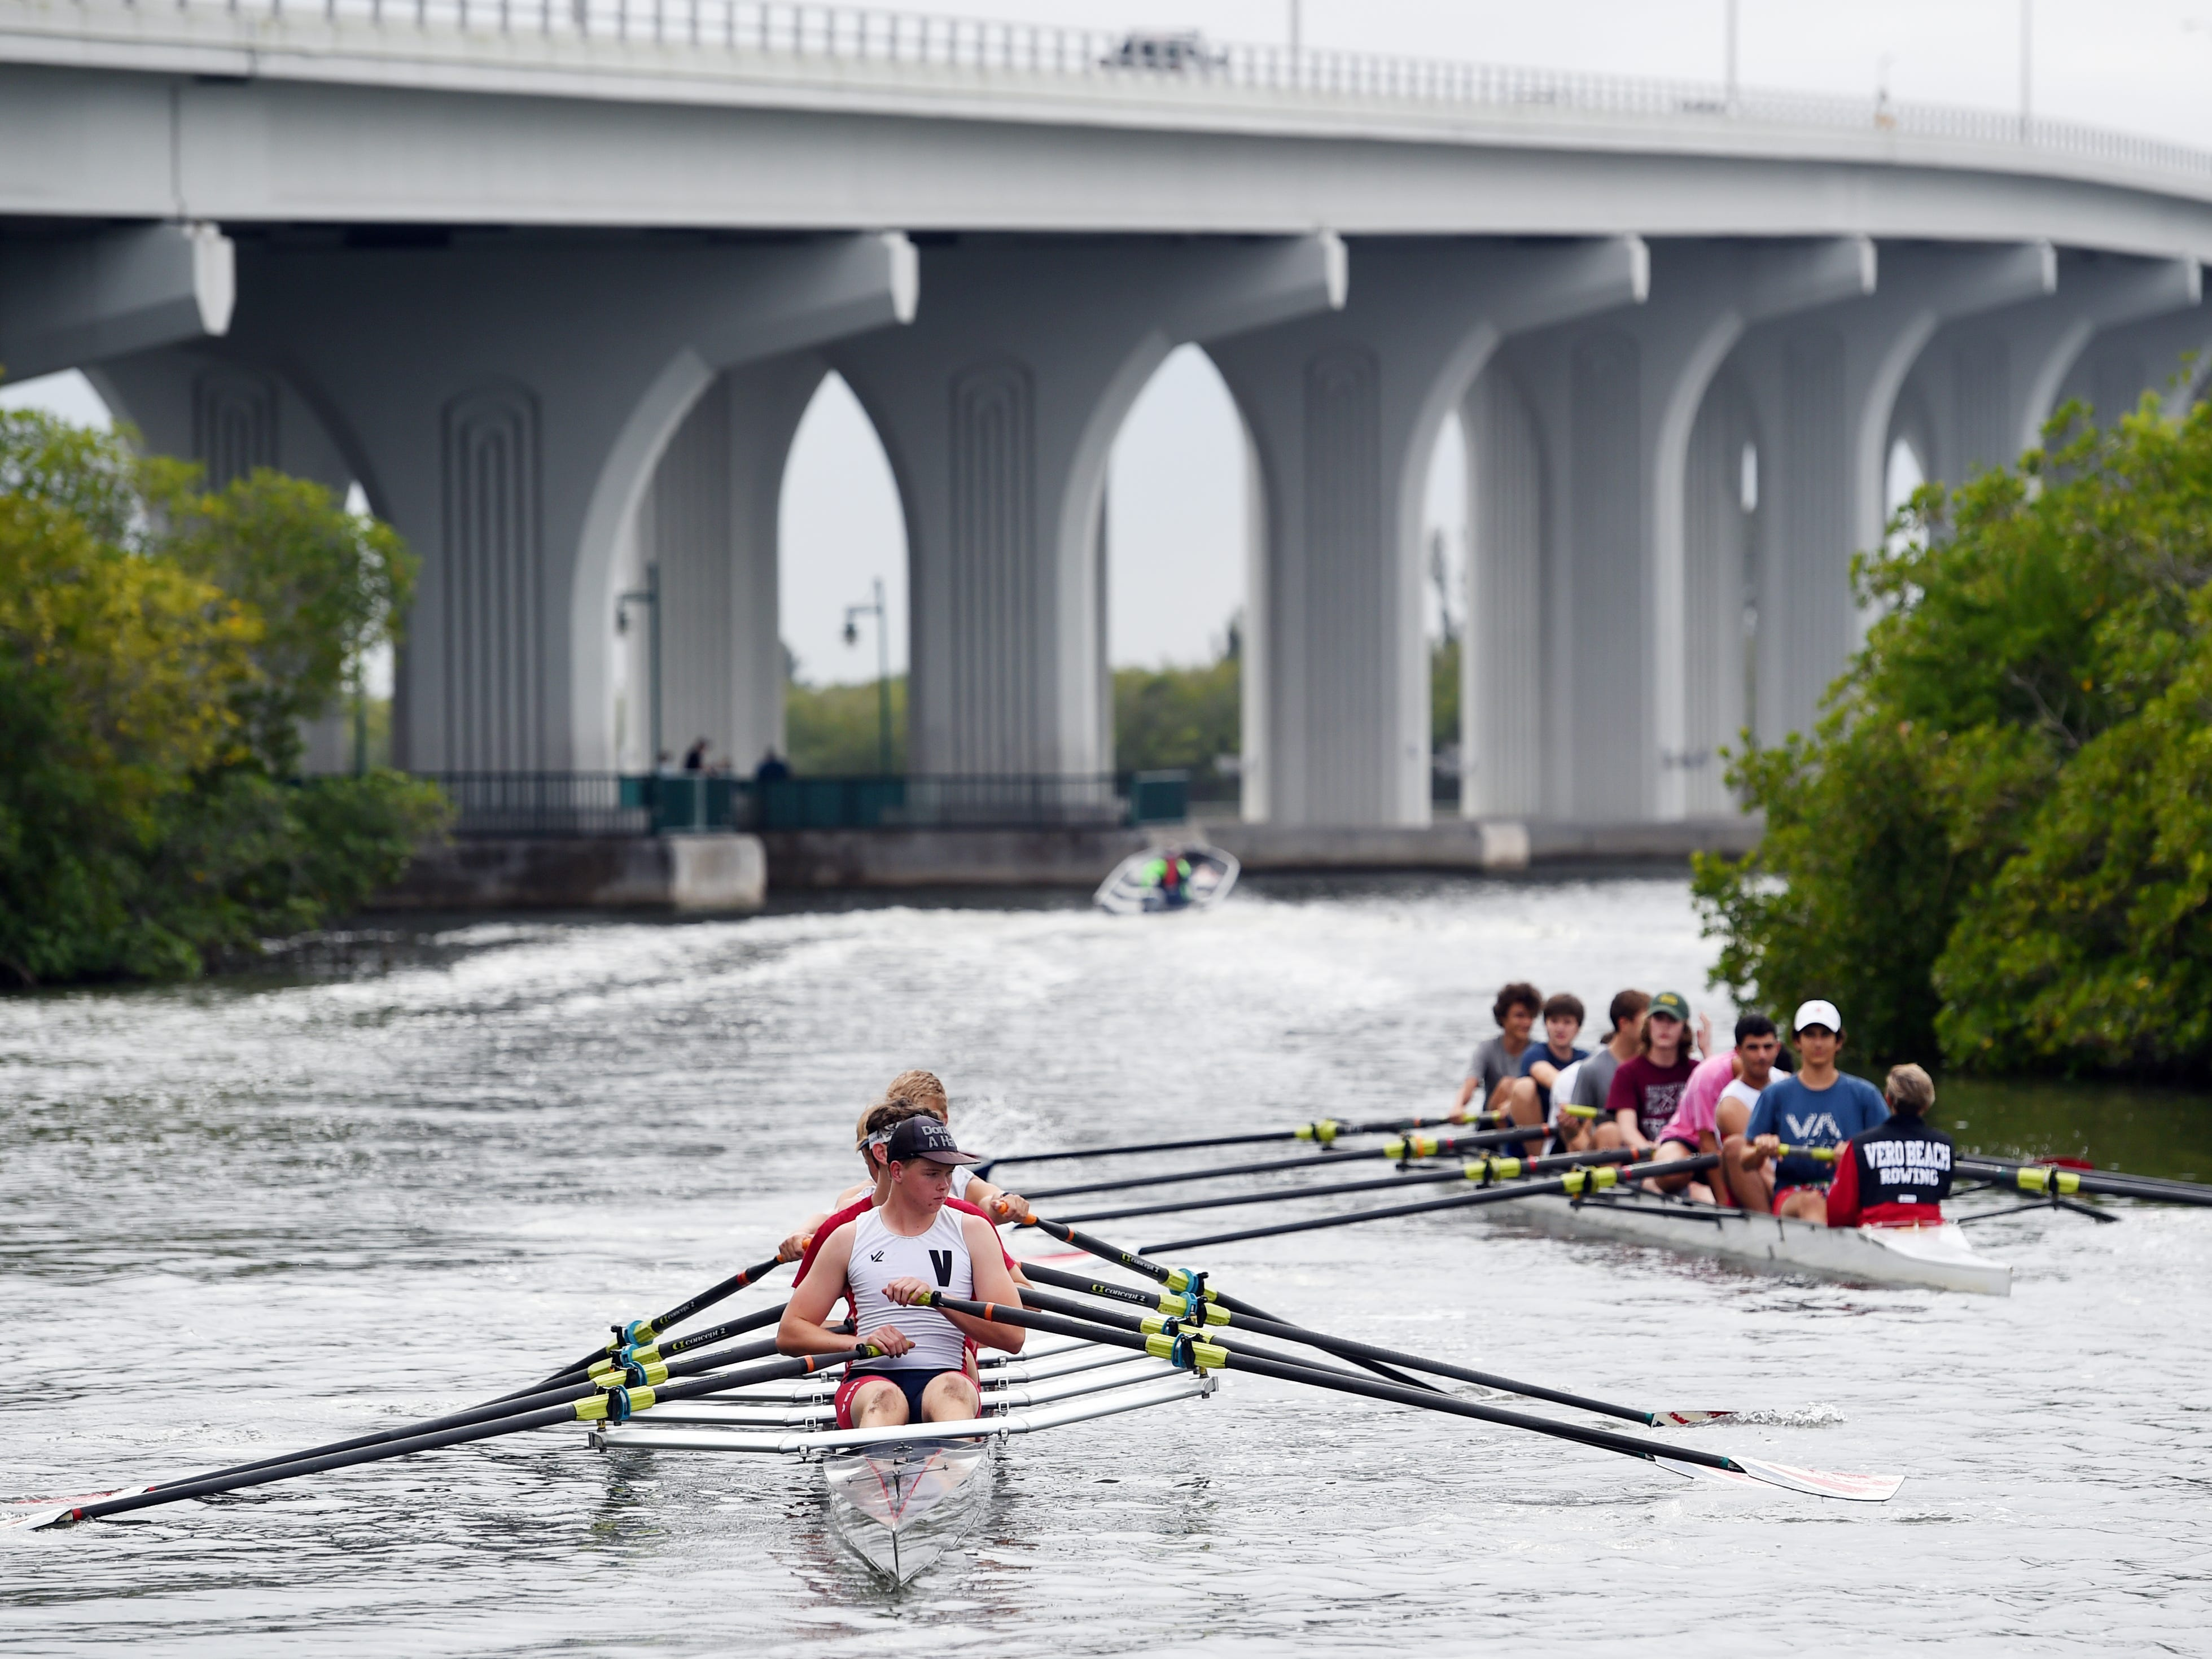 "Junior members of Vero Beach Rowing make their way to the Indian River Lagoon on Tuesday, March 12, 2019 for afternoon practice at McWilliams Park in Vero Beach. Currently, the club has about 30 junior members and 90 adult members. ""In rowing you learn discipline, teamwork, self-confidence, the ability to work harder than you ever thought imaginable,"" said coach Brian Colgan. ""If everyone rows as one it's a beautiful thing."""